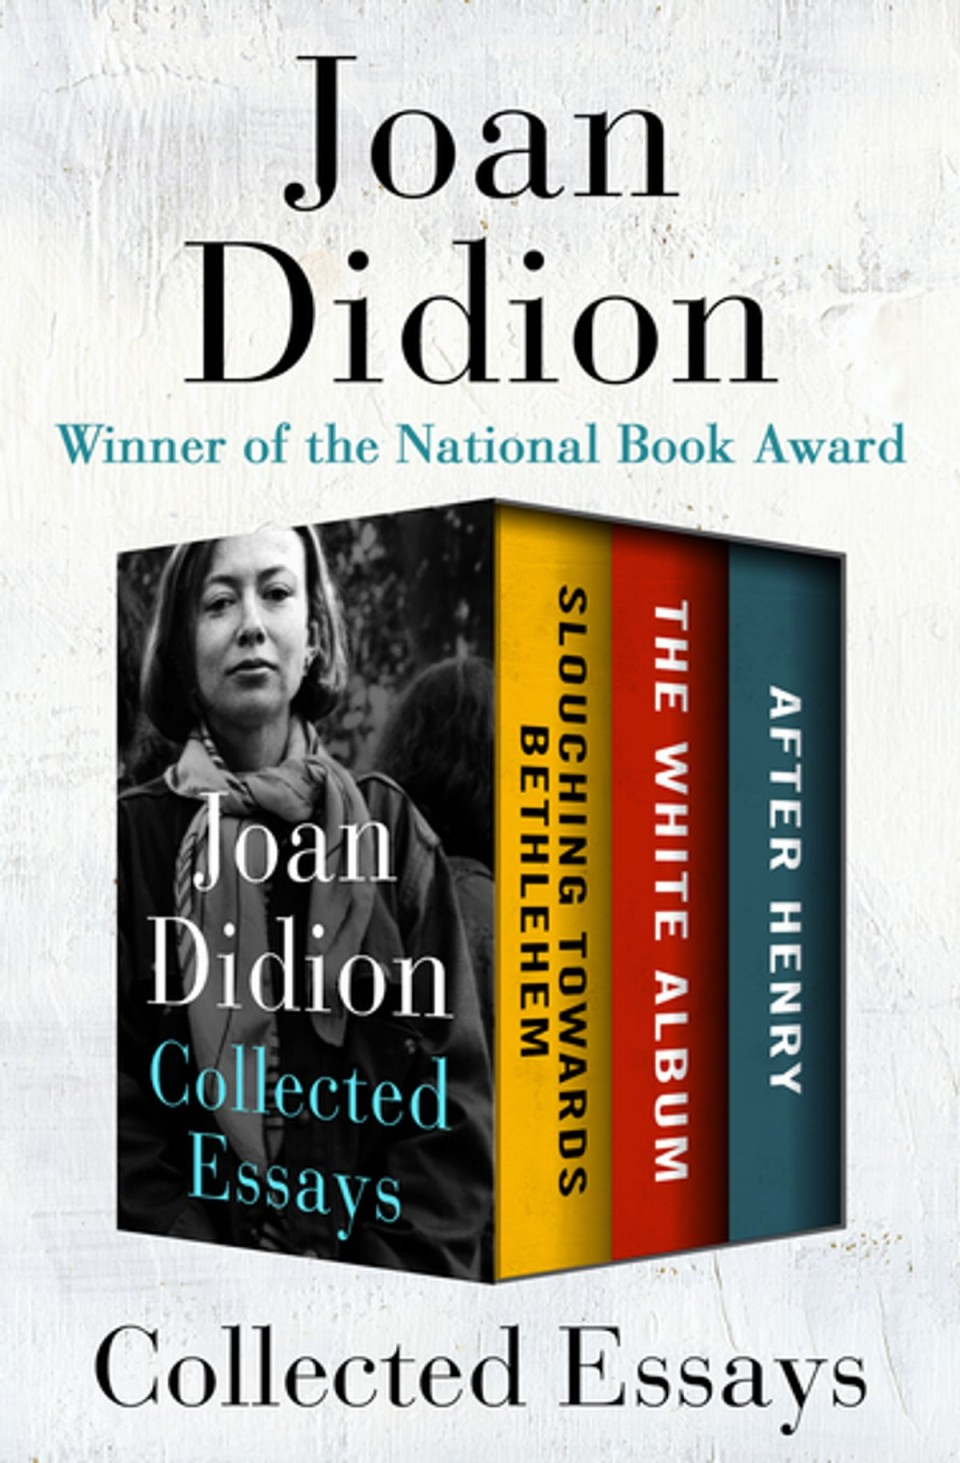 010 Collected Essays Joan Didion Essay Singular Collections On Santa Ana Winds Amazon 960